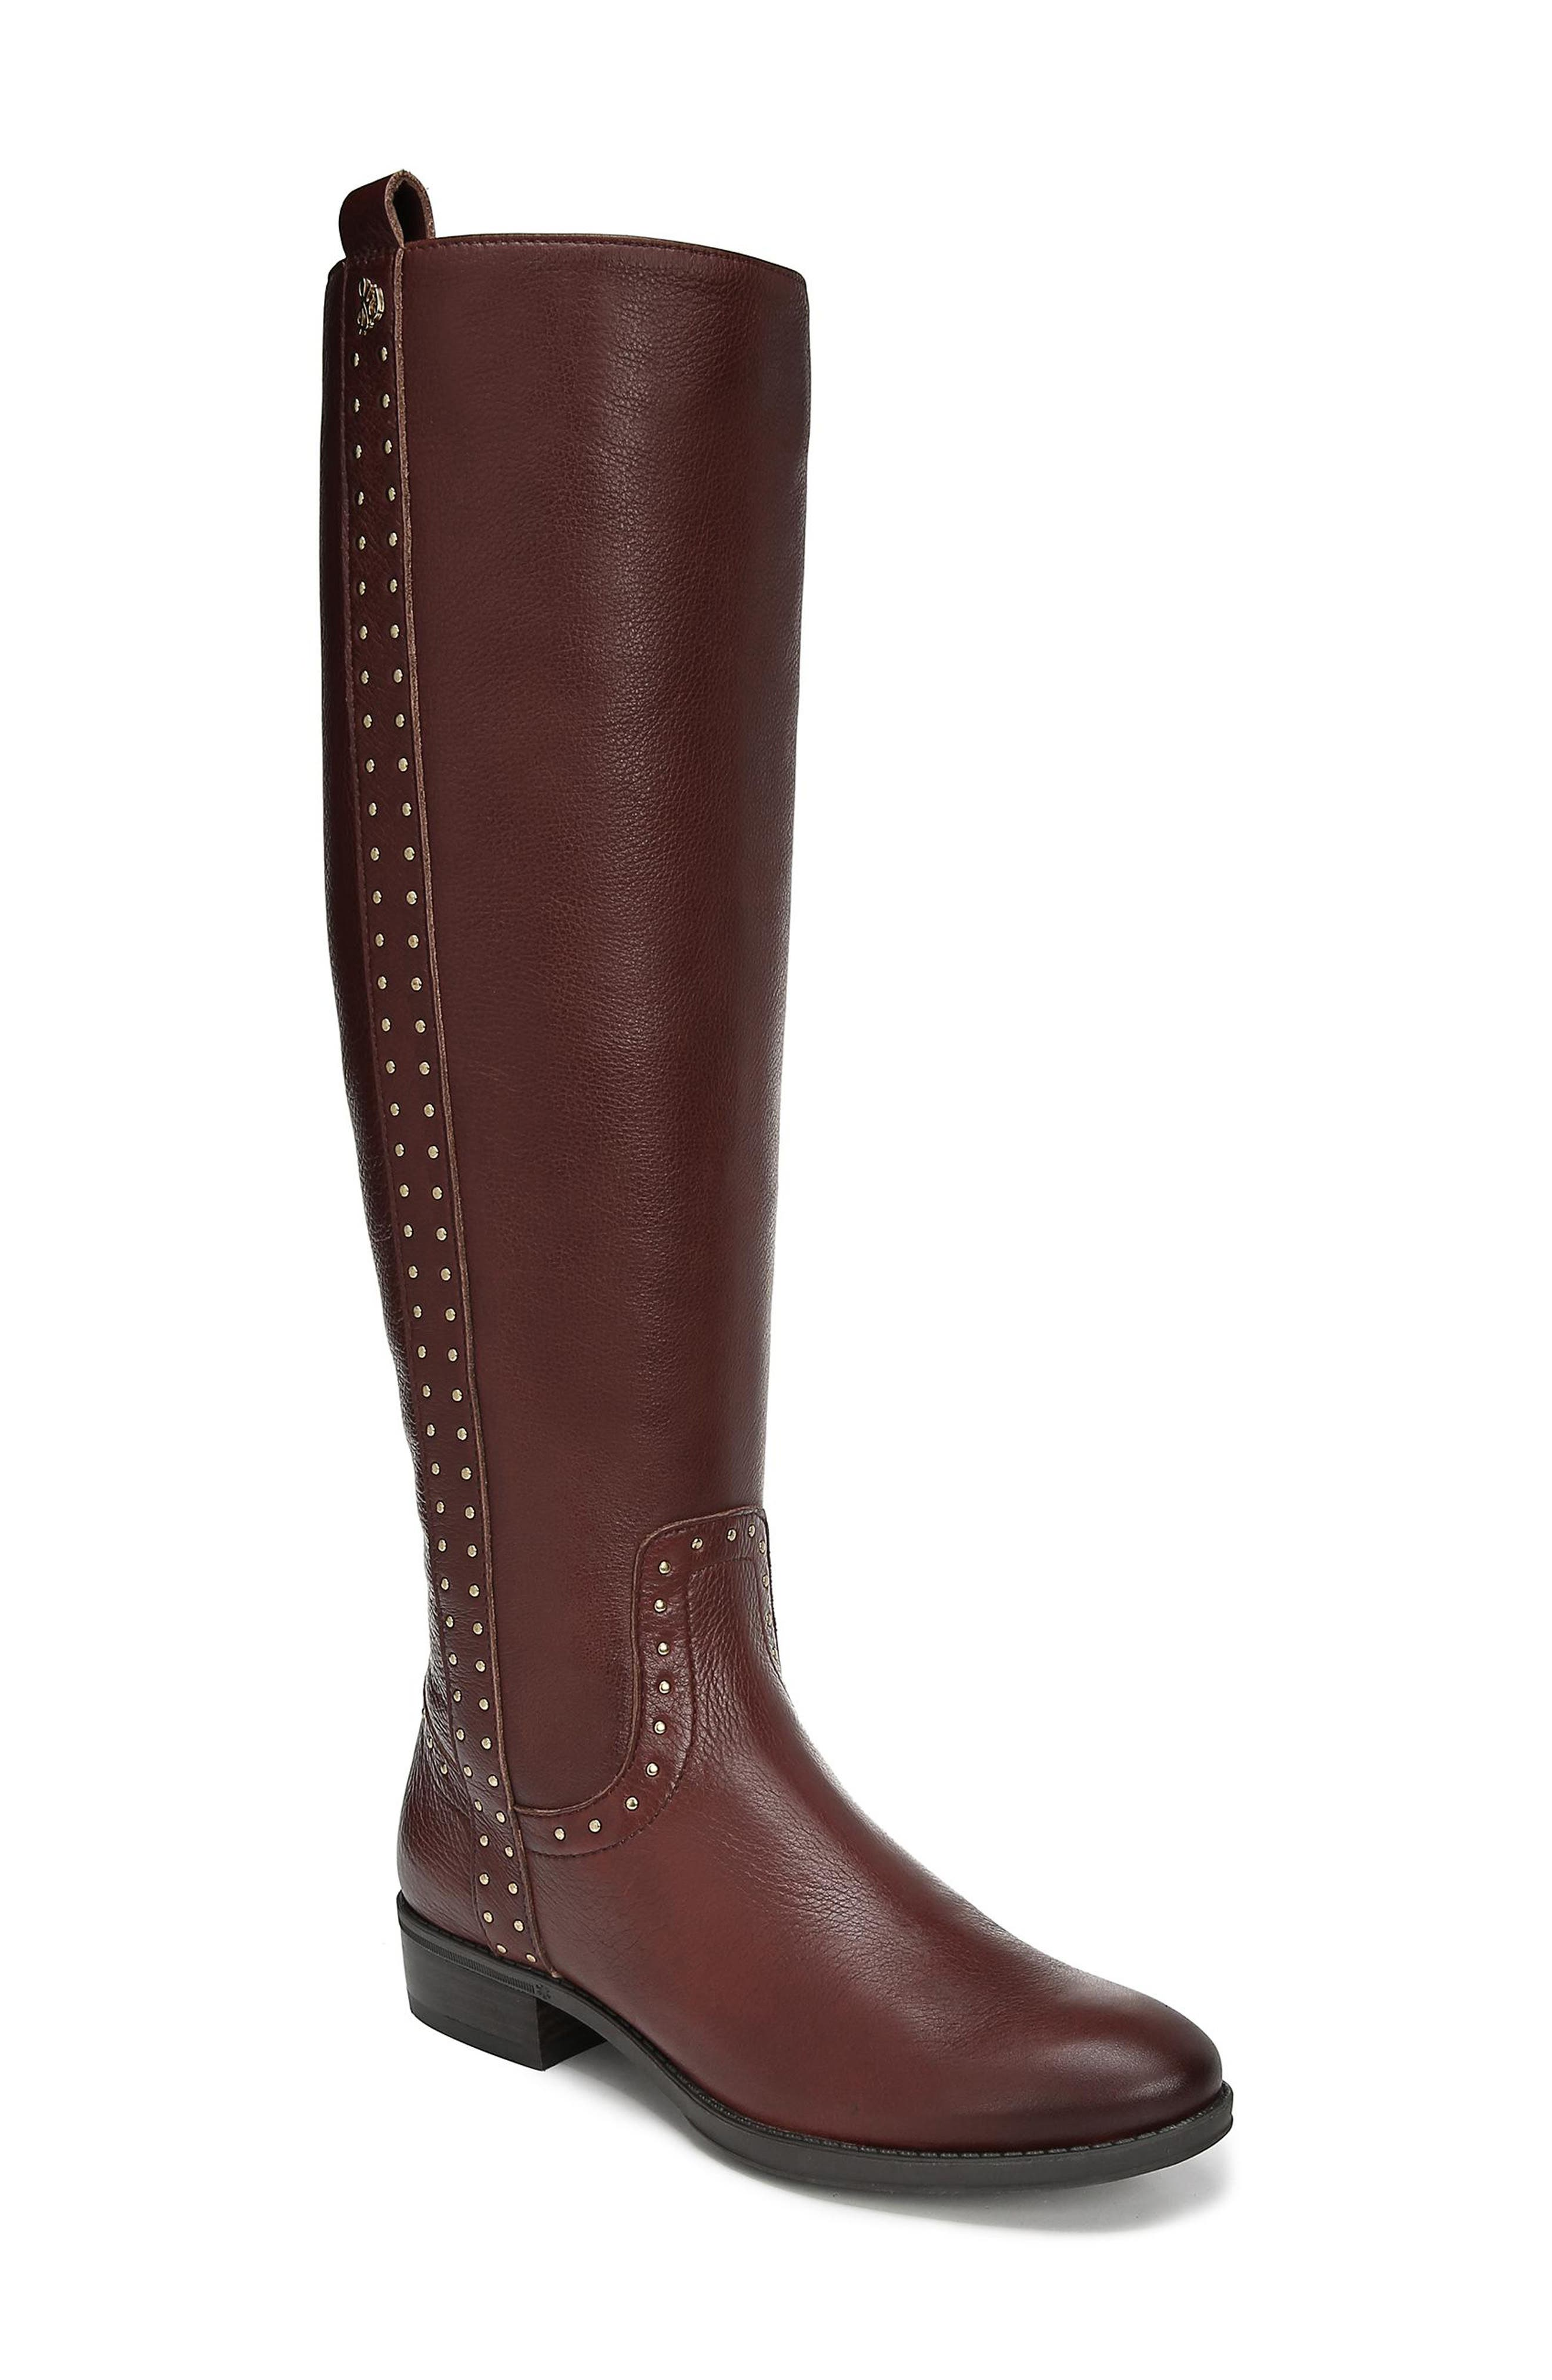 Prina Riding Boot,                         Main,                         color, REDWOOD BROWN LEATHER